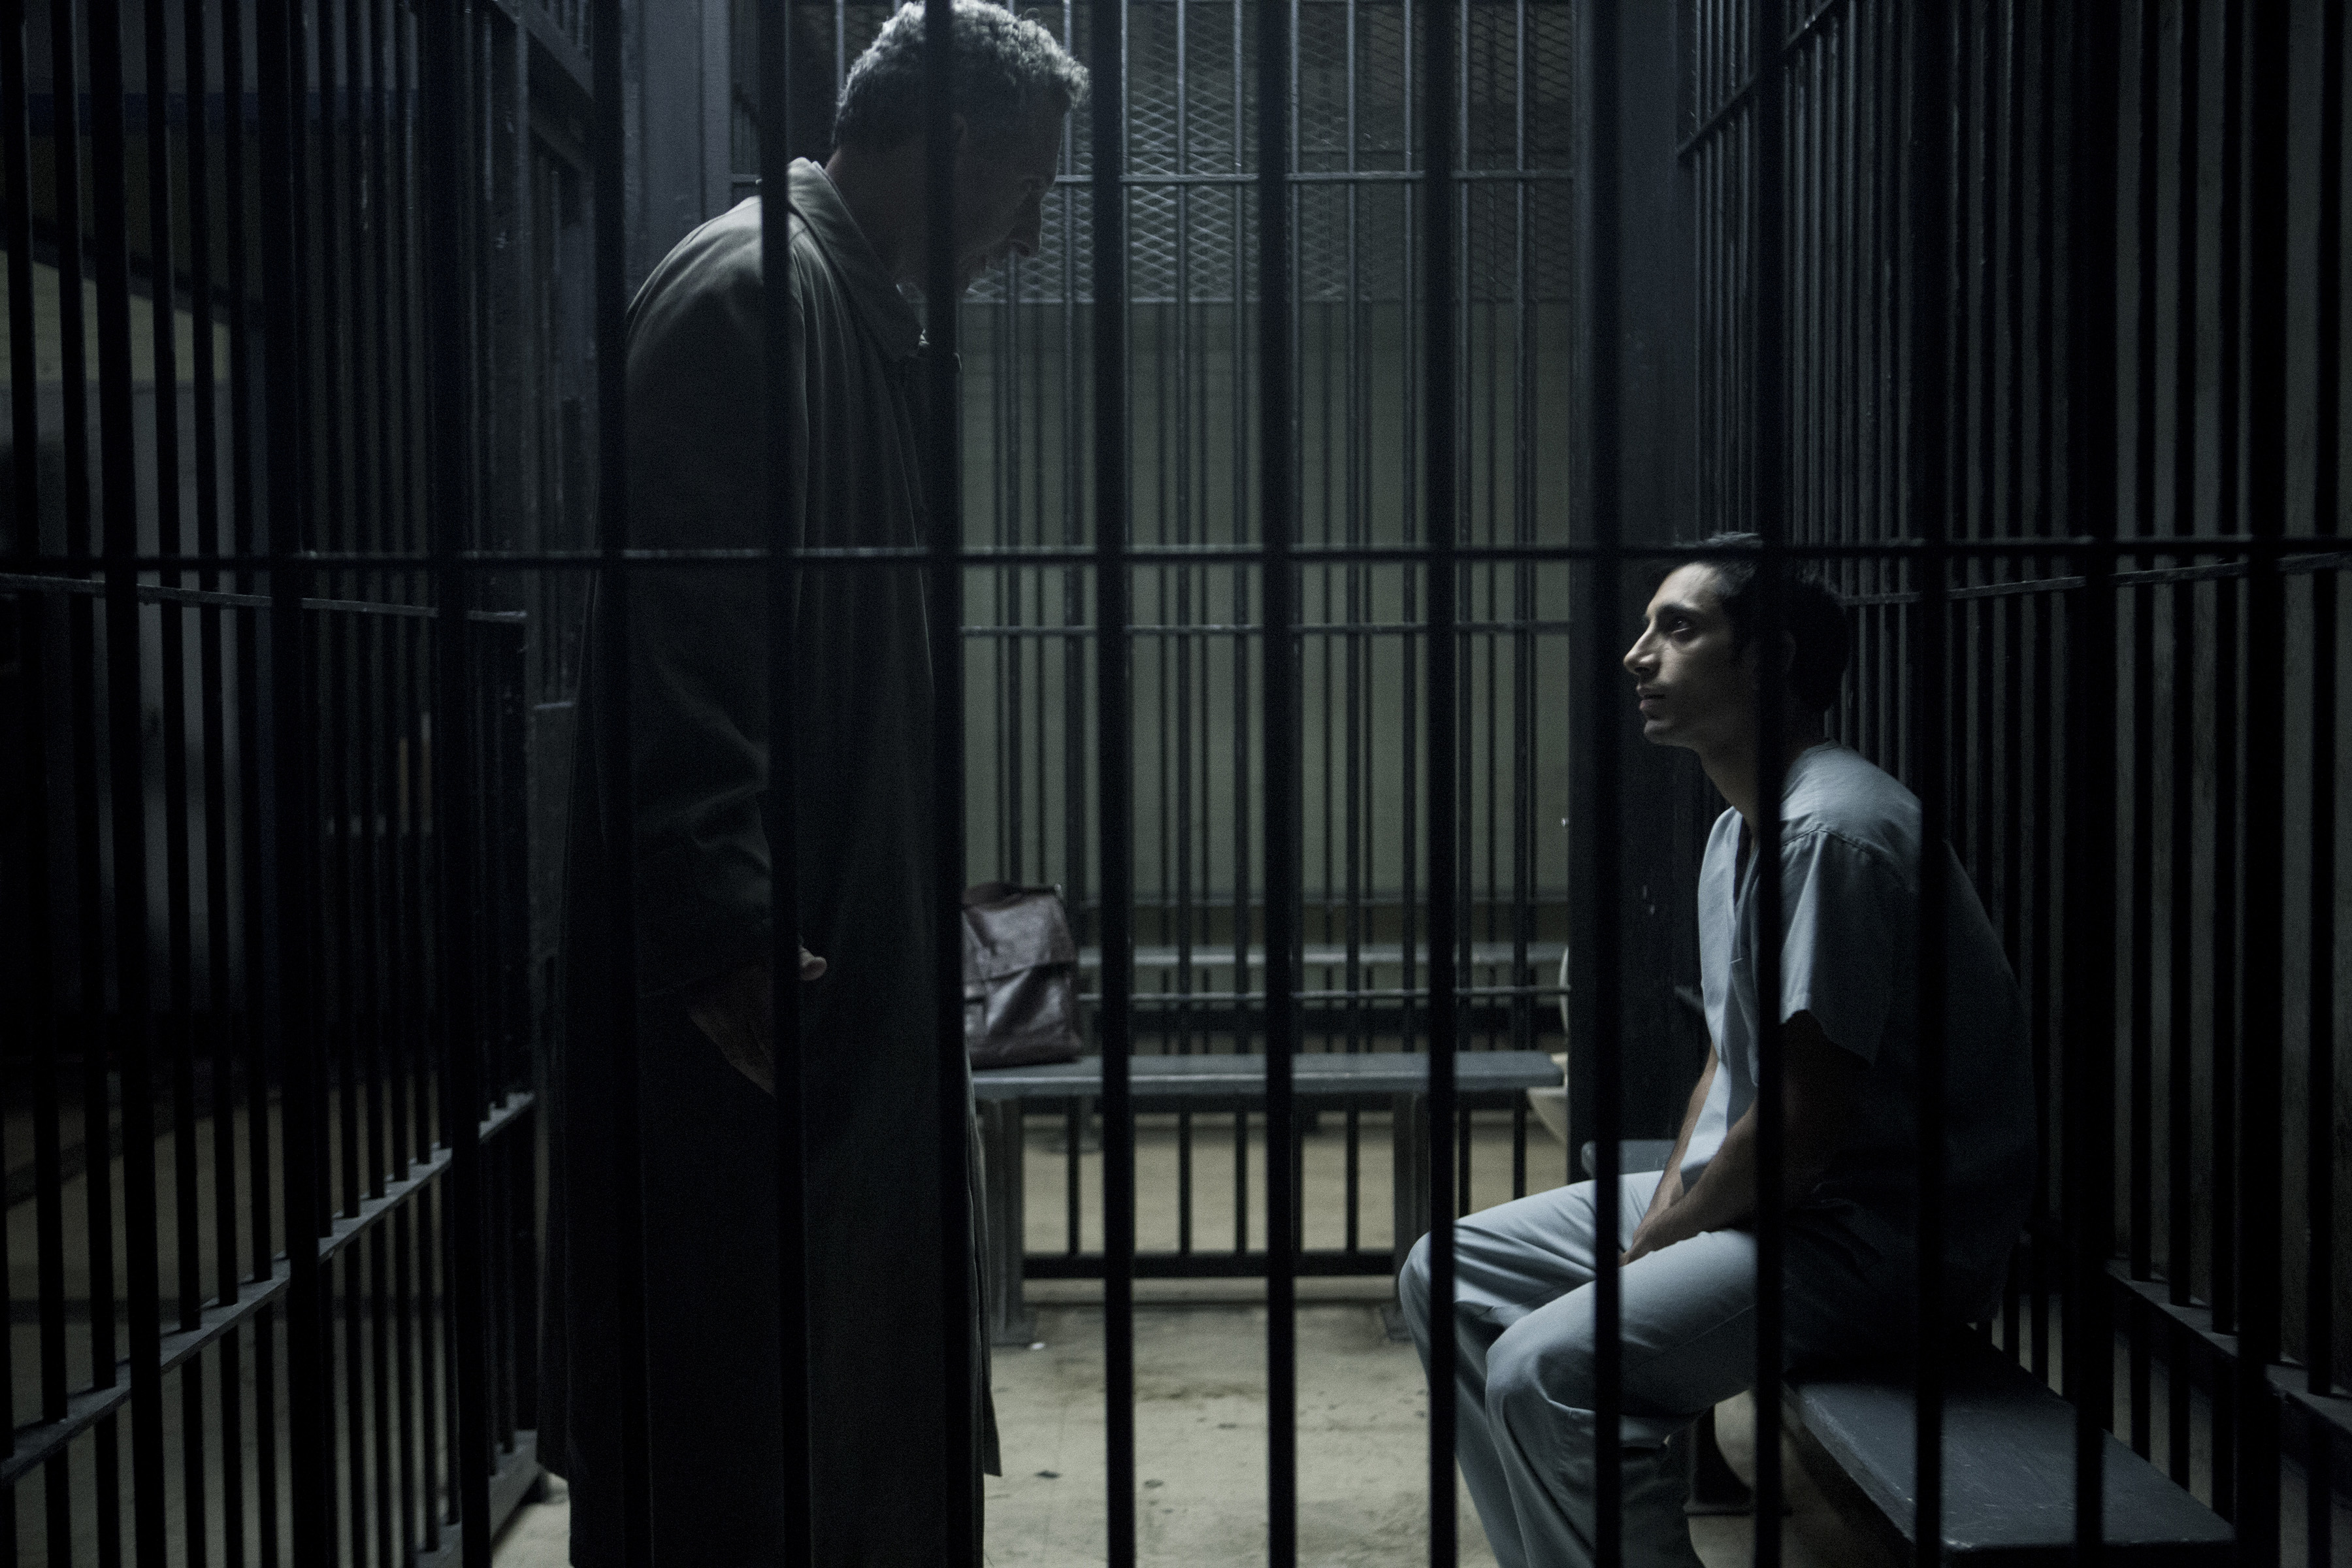 the night of hbo Top 25 TV Shows of 2016